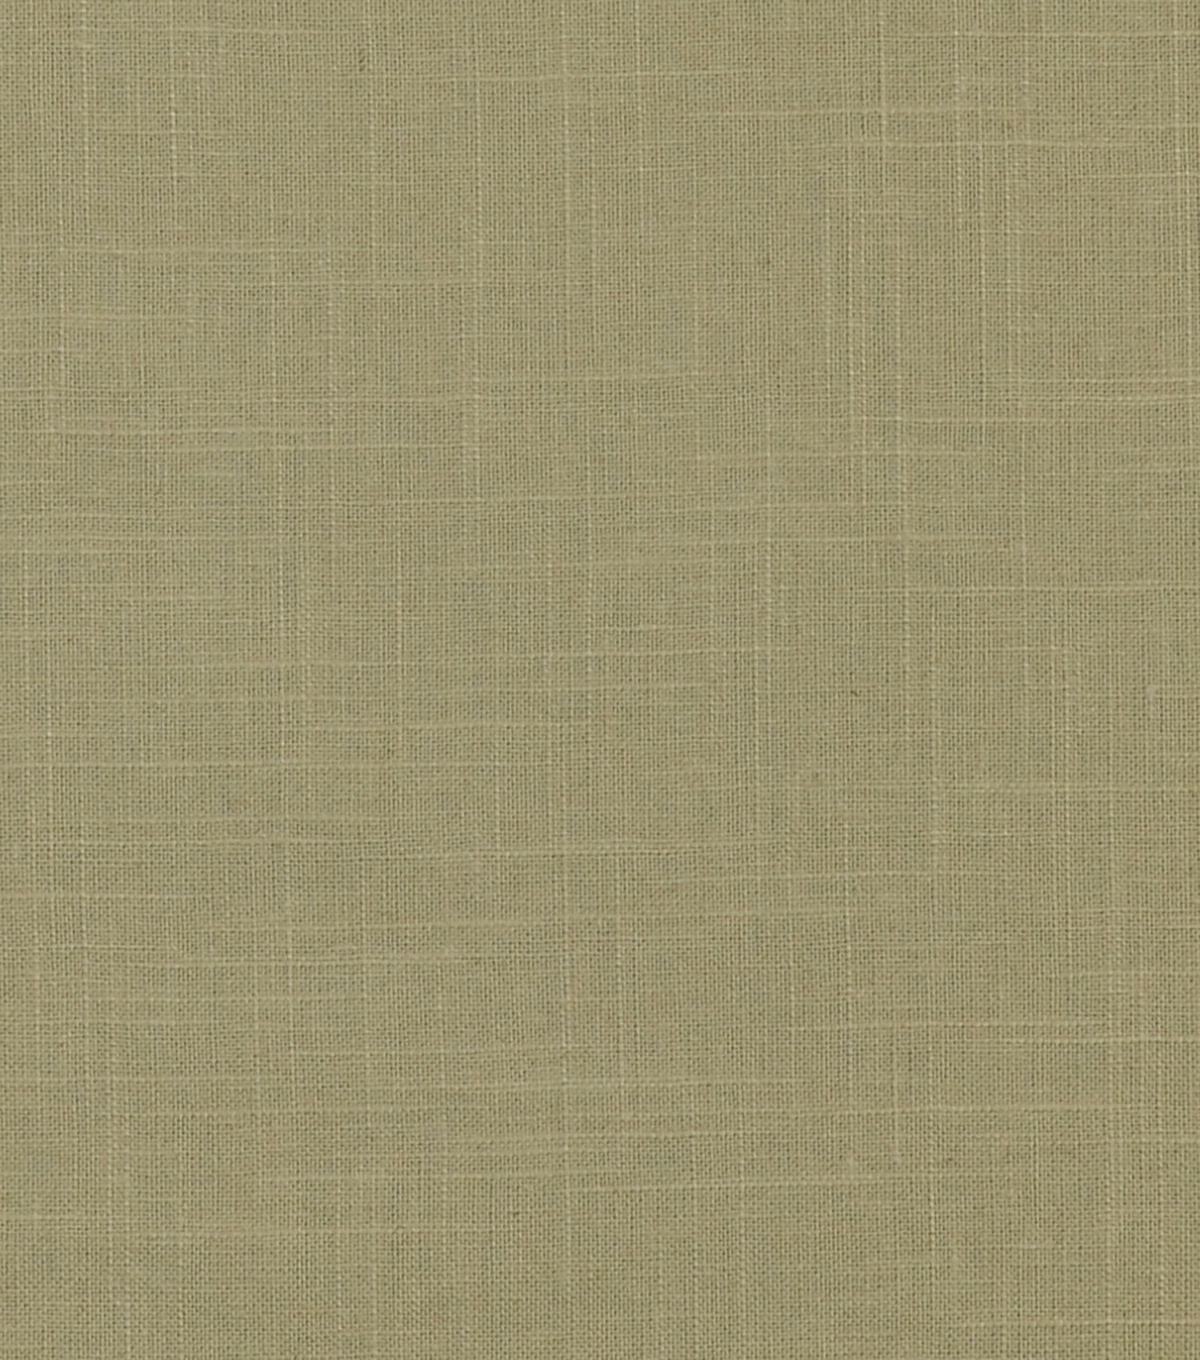 Covington Multi-Purpose Decor Fabric Swatch-Calen